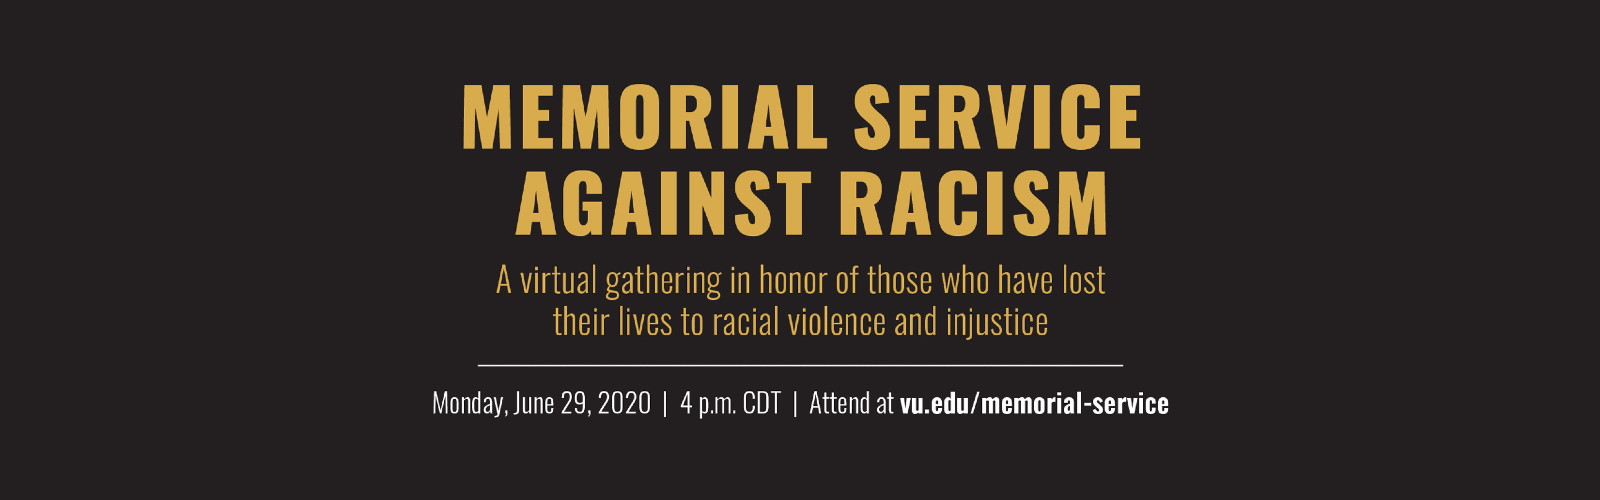 View the Memorial Service Against Racism